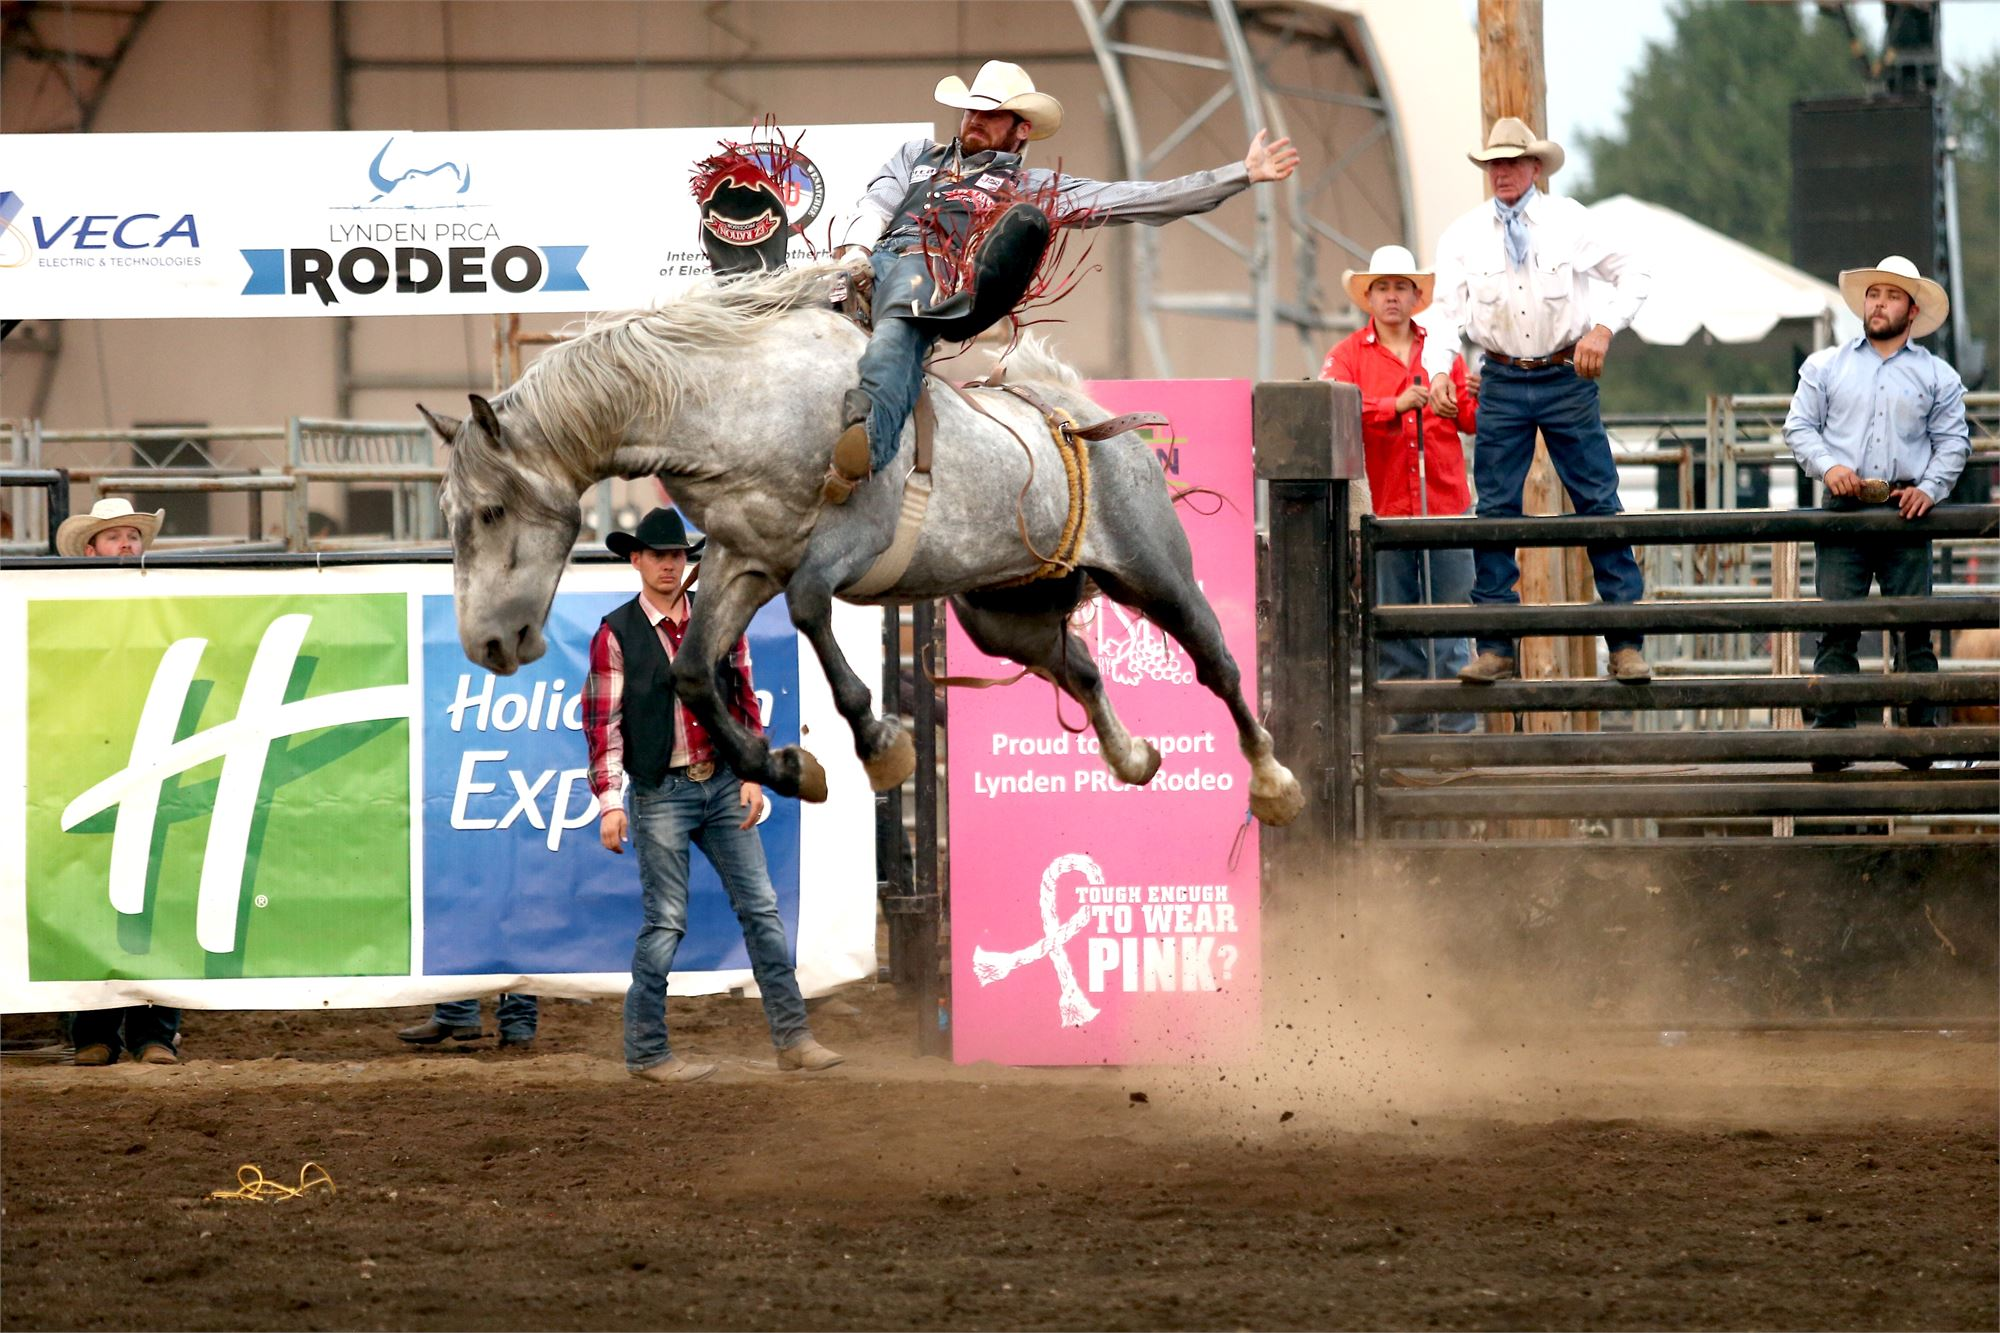 Lynden PRCA Rodeo